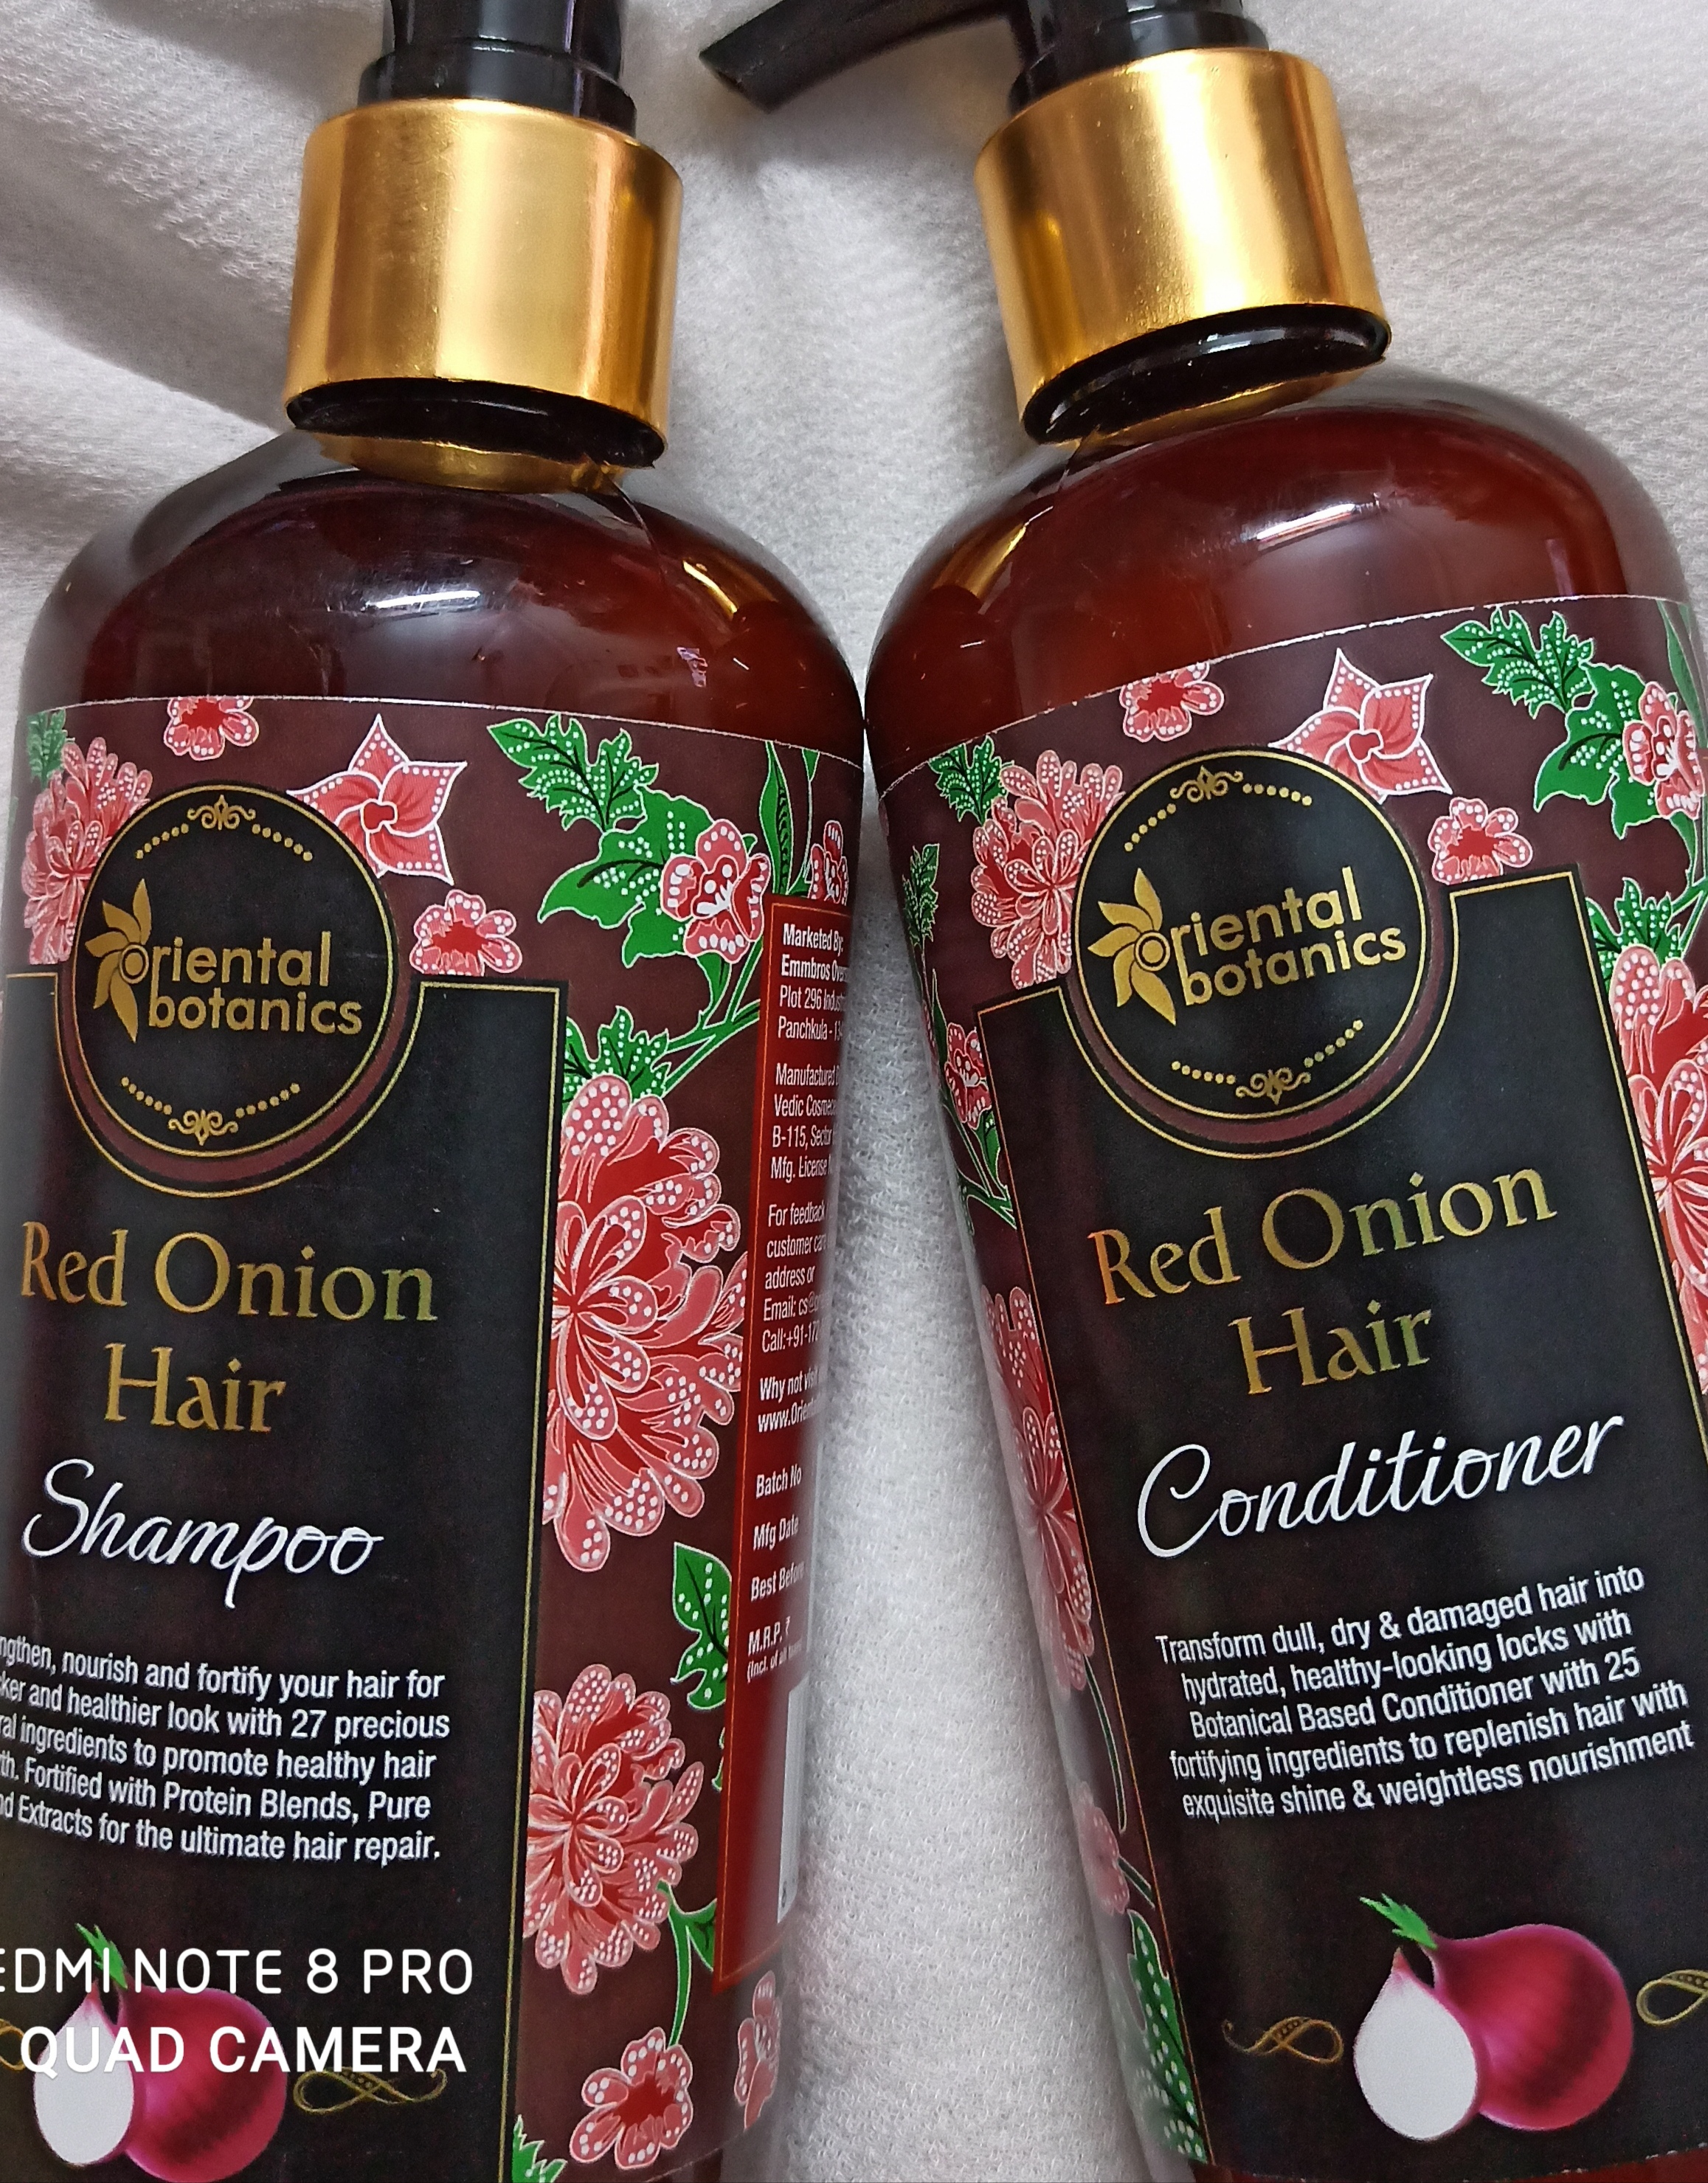 Oriental Botanics Red Onion Hair Shampoo + Conditioner Kit-Must buy products-By payal19